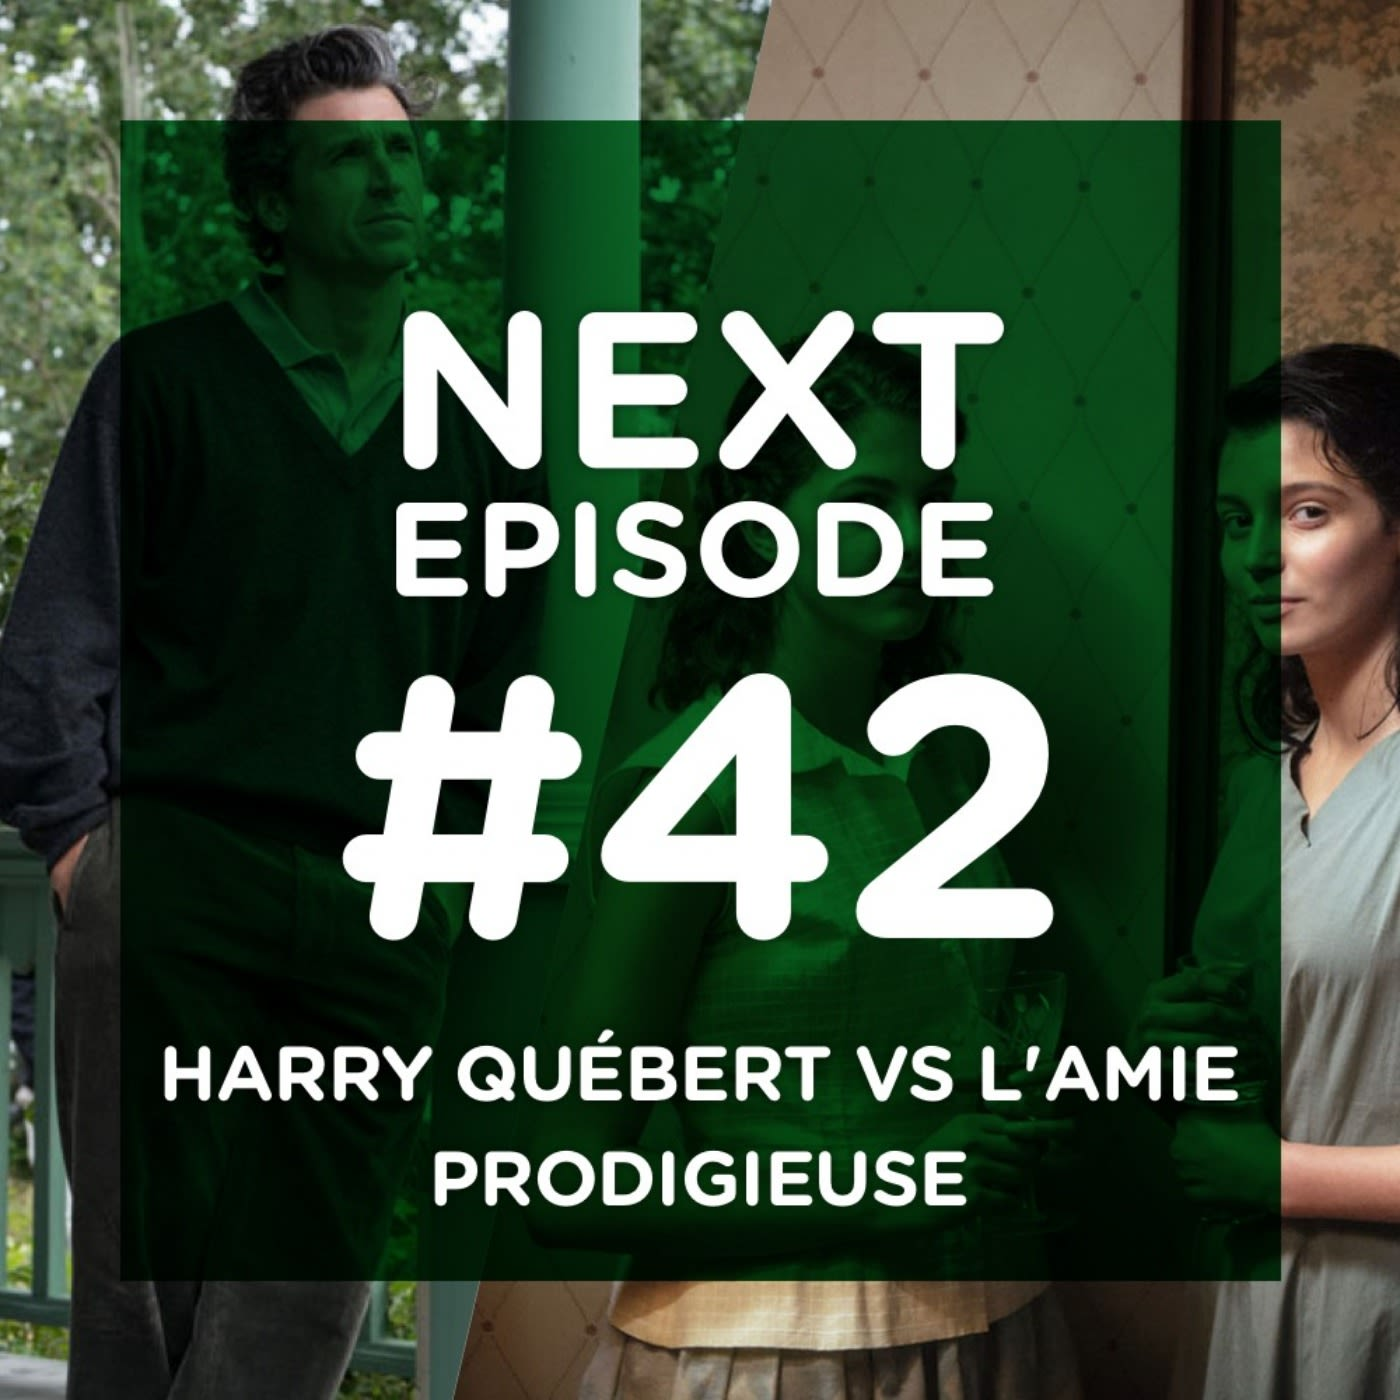 Le match des best-sellers, Harry Québert vs L'amie prodigieuse